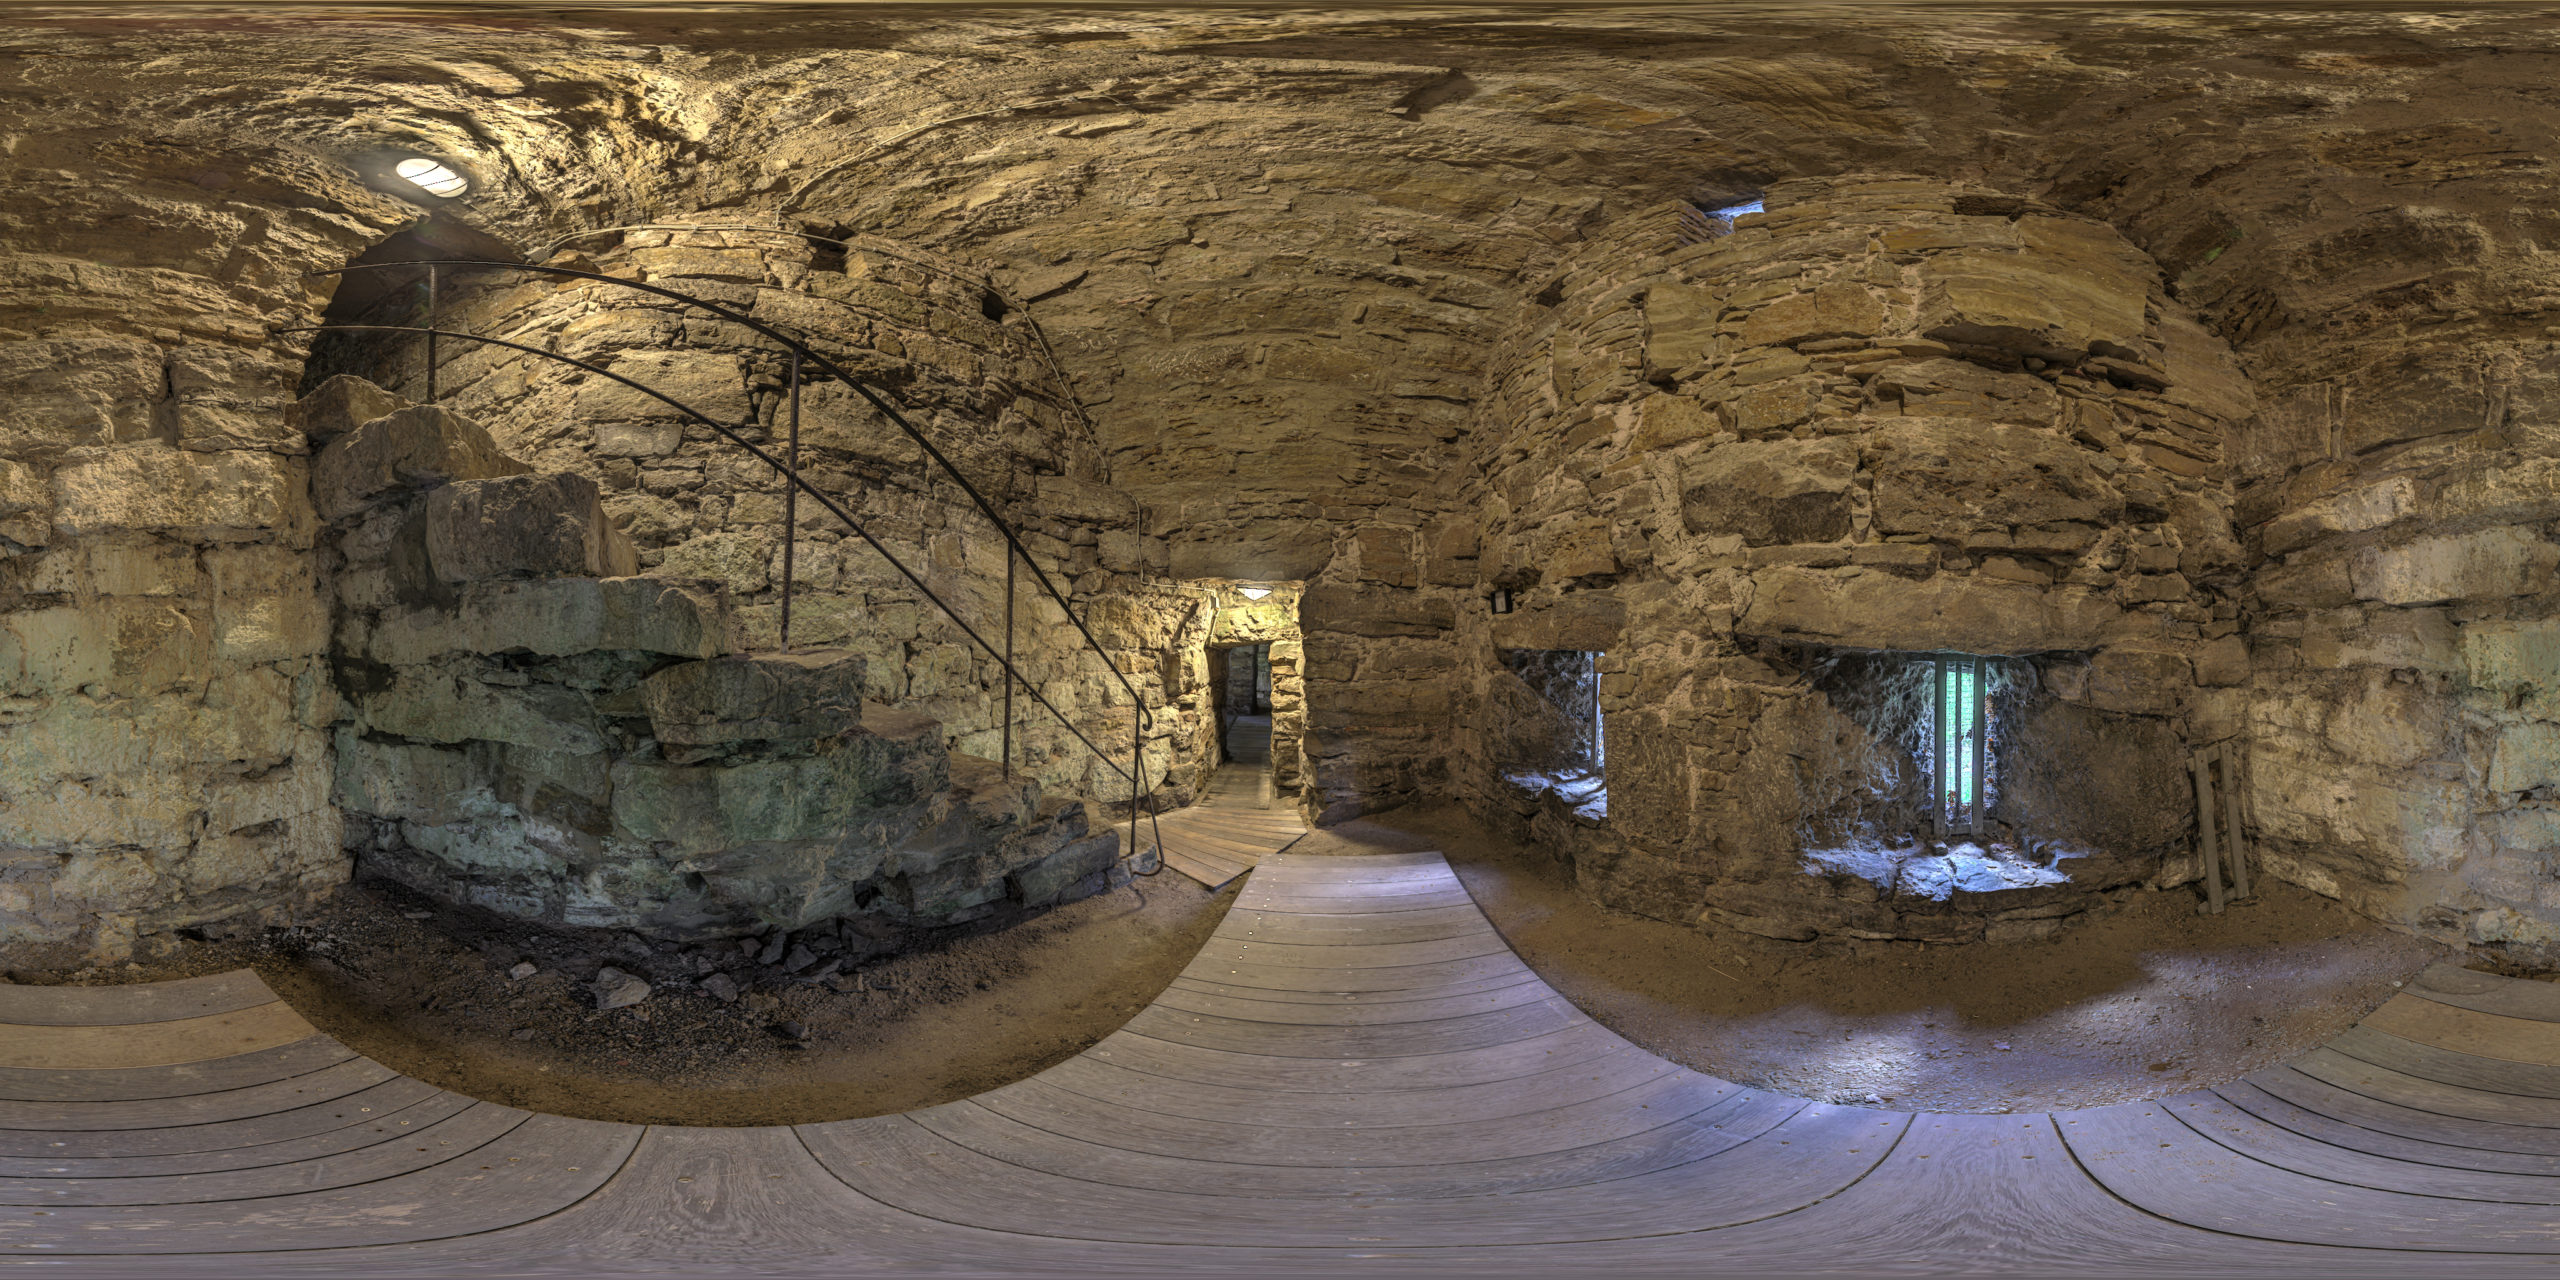 HDRI-Skies-Saint-Wolfang-Dungeon-Rothenburg-Ob-Der-Tauber